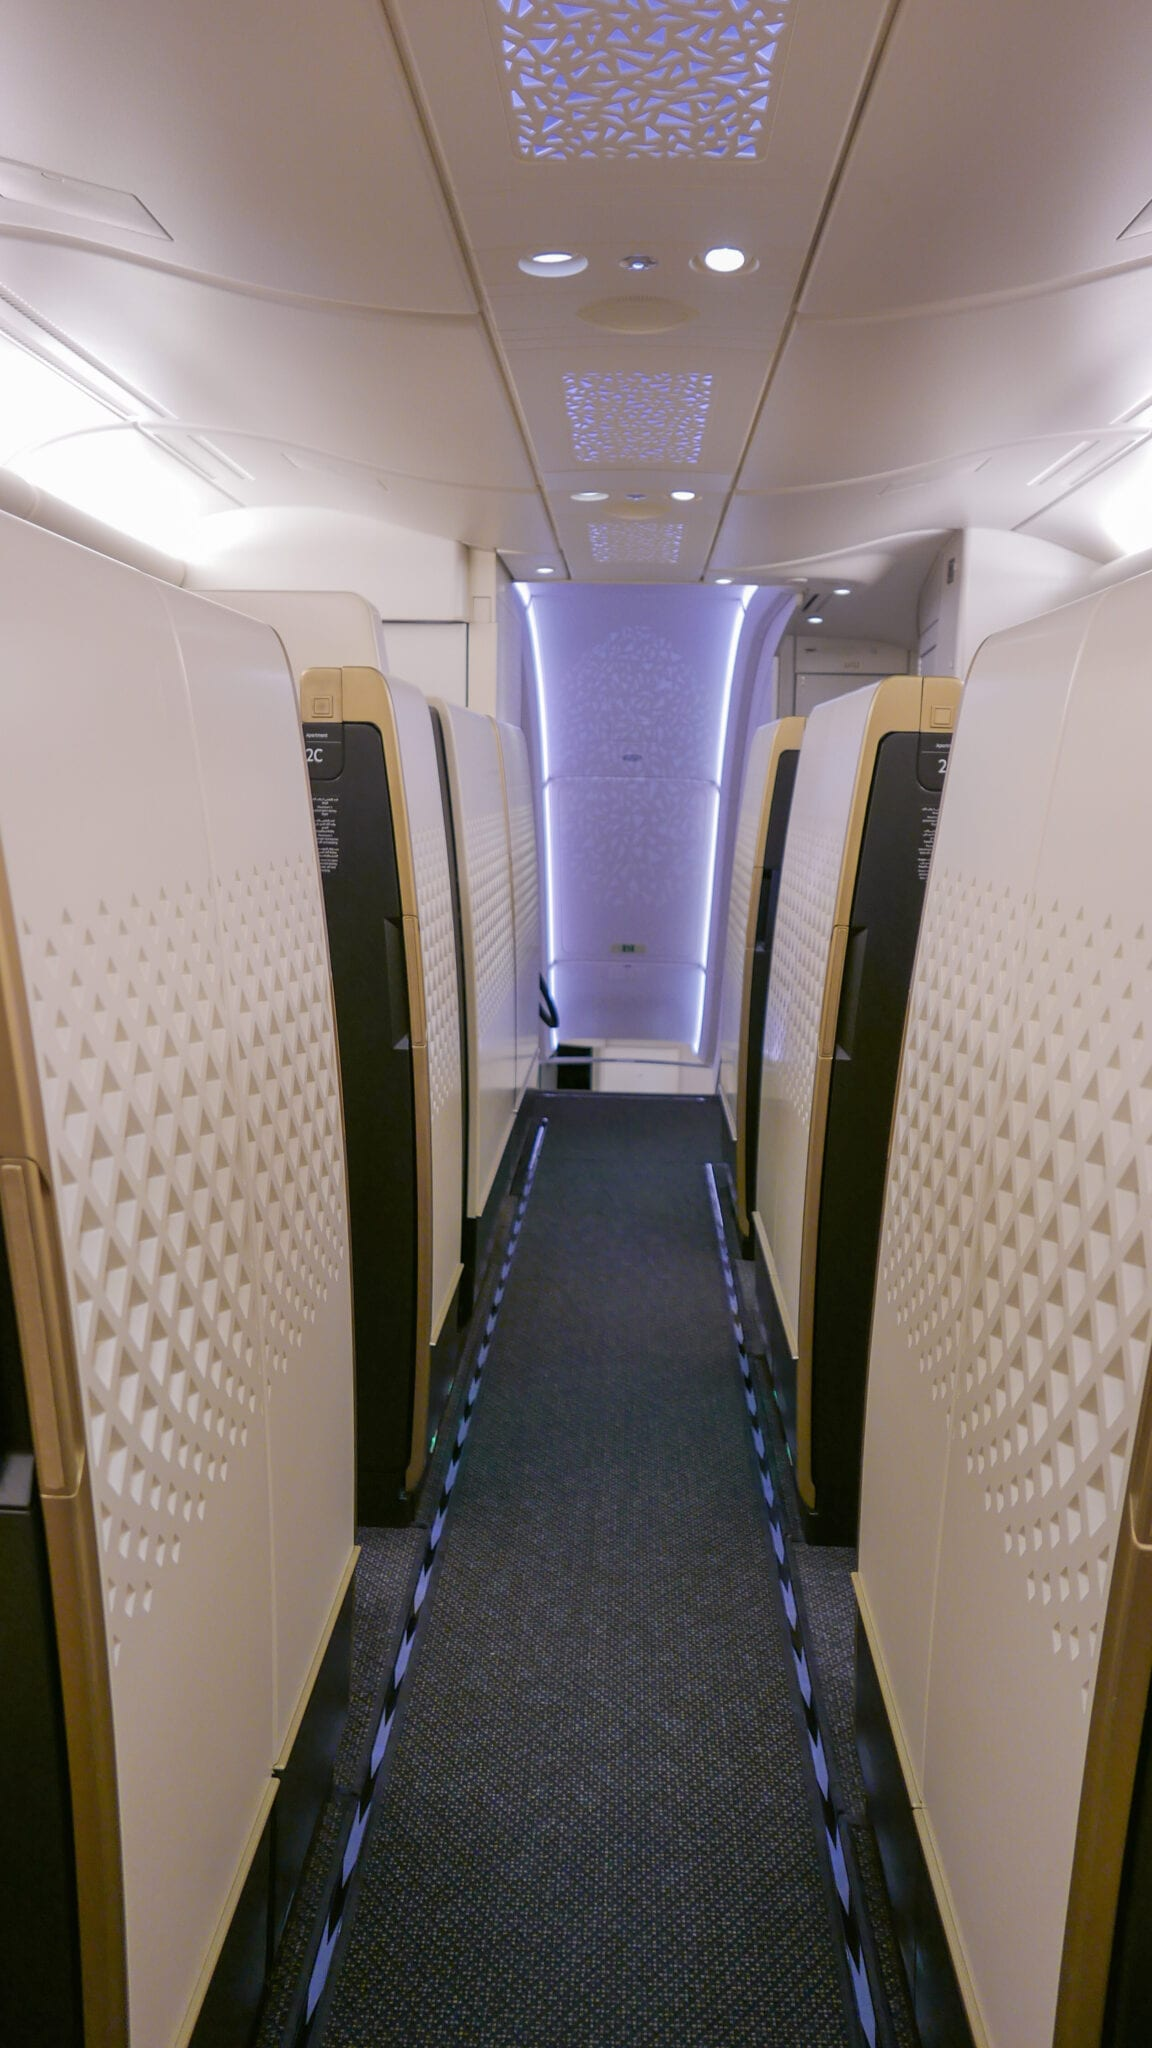 EY APTS 1 - SECOND REVIEW - Etihad : First Class Apartments - Abu Dhabi AUH to London LHR (A380)